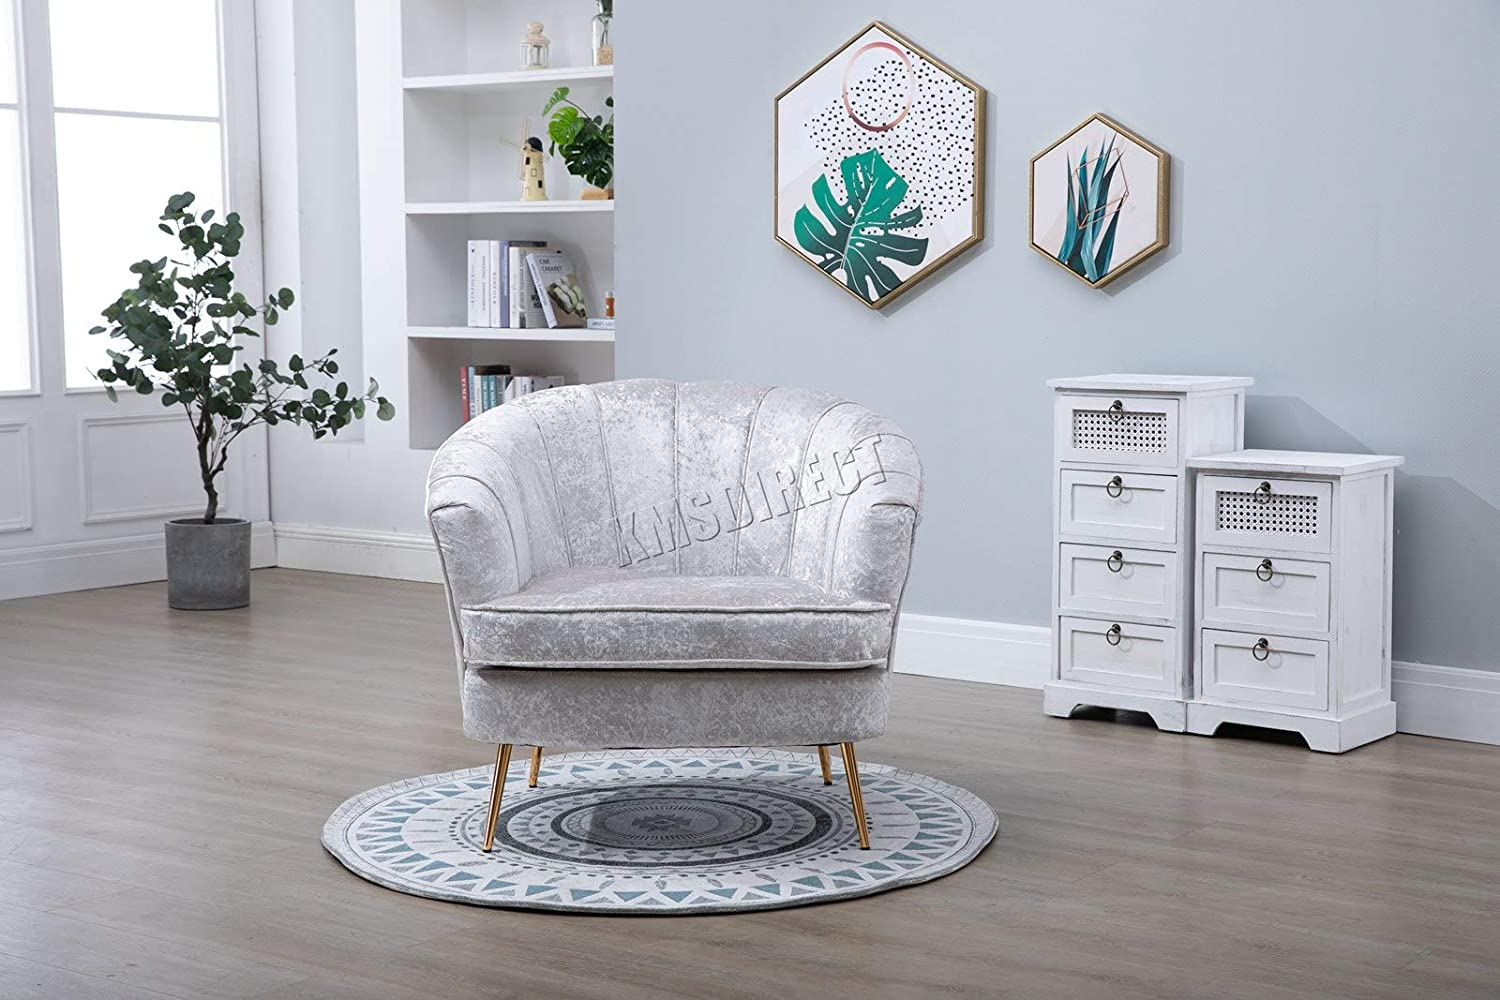 WestWood Armchair Sofa 1 Seater Settee Couch Upholstered Seat Crush Velvet Fabric Tub Chair Home Furniture 8105 Cream